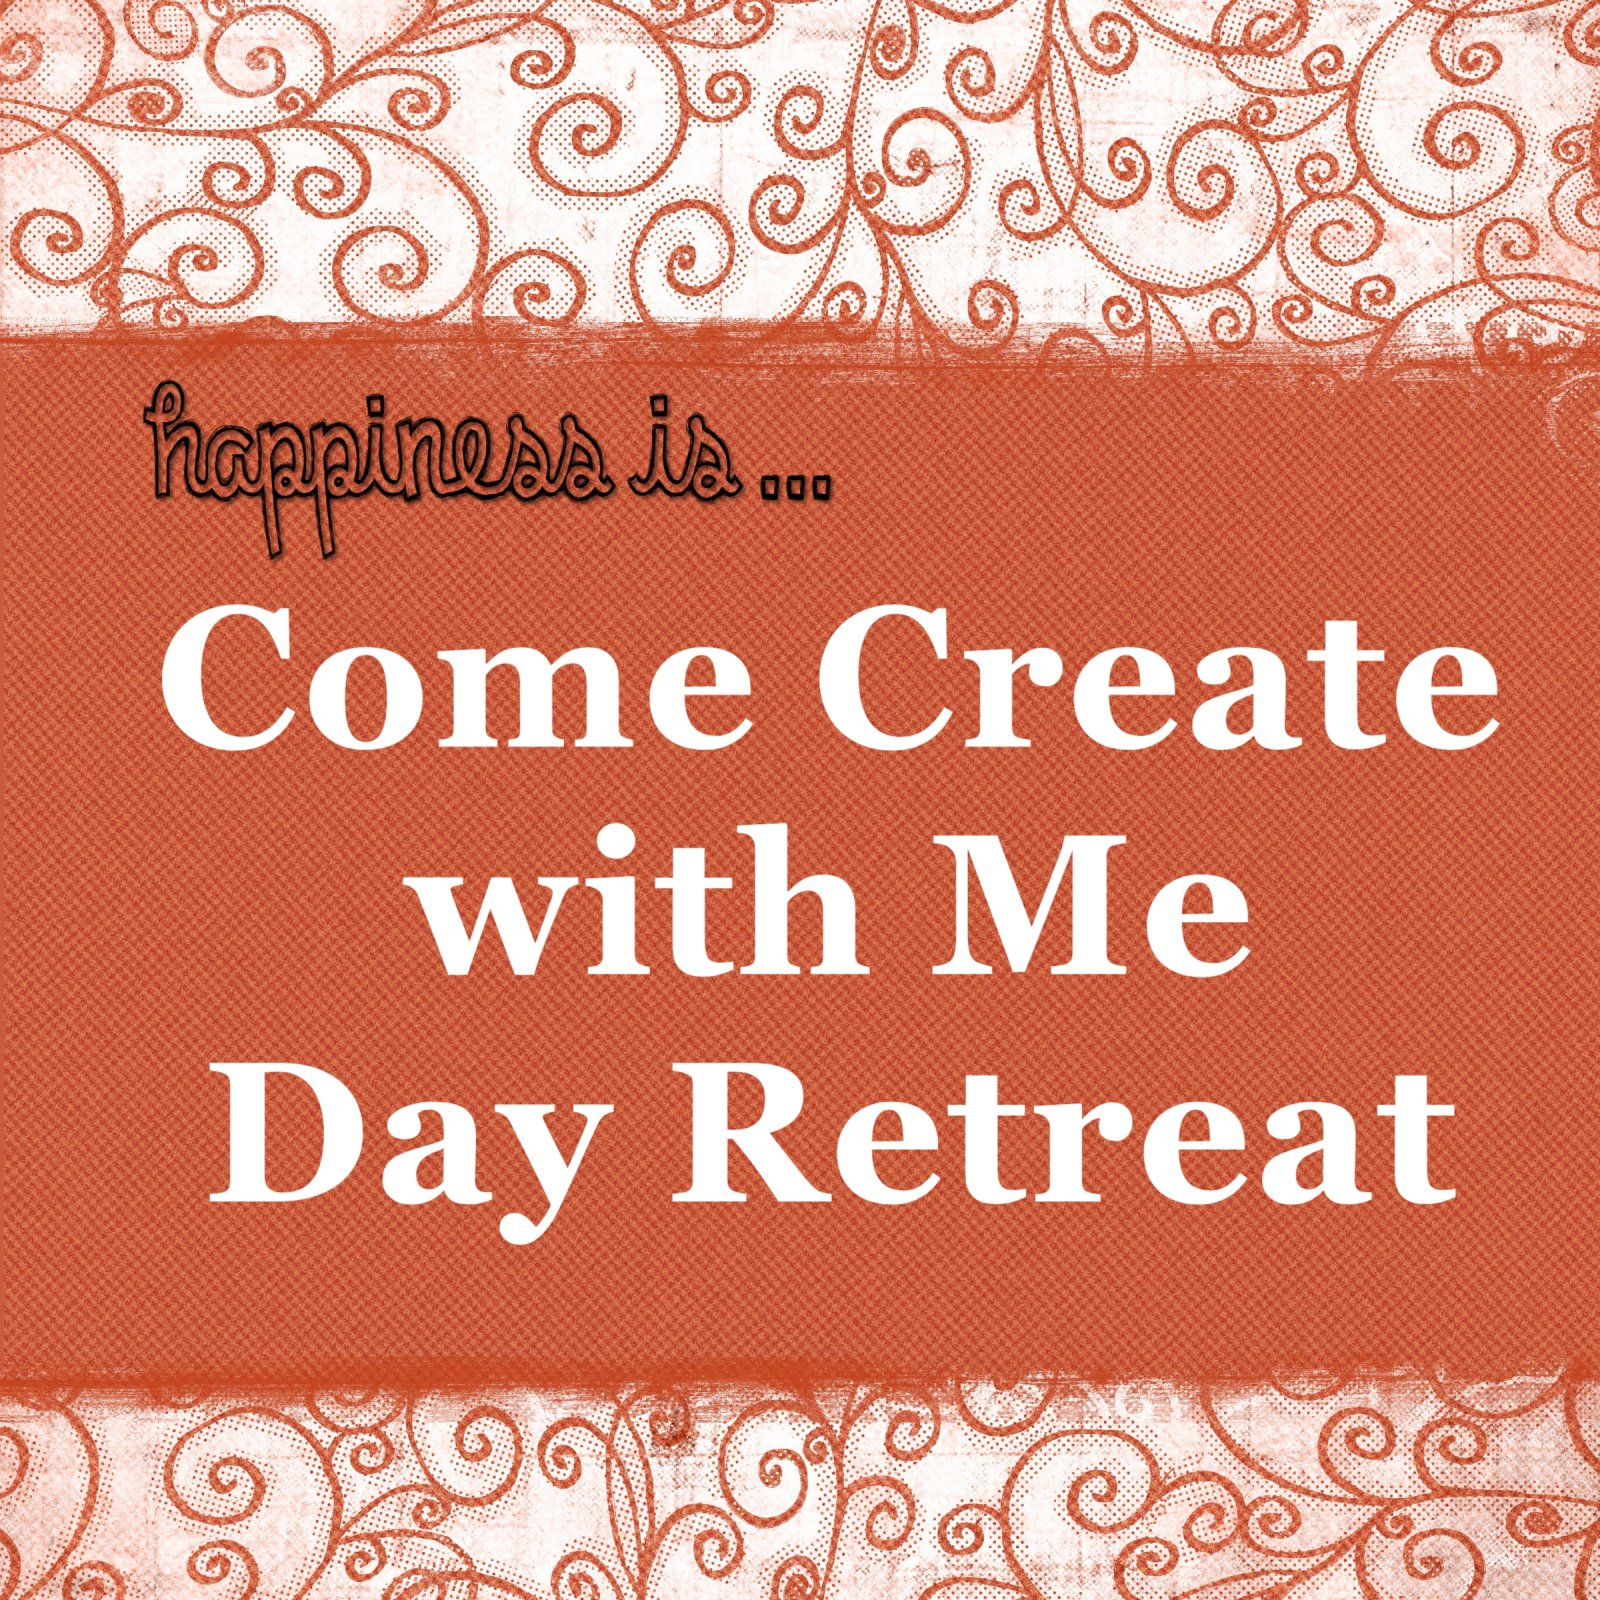 Come Create with Me Day Retreat--July 28, 2021